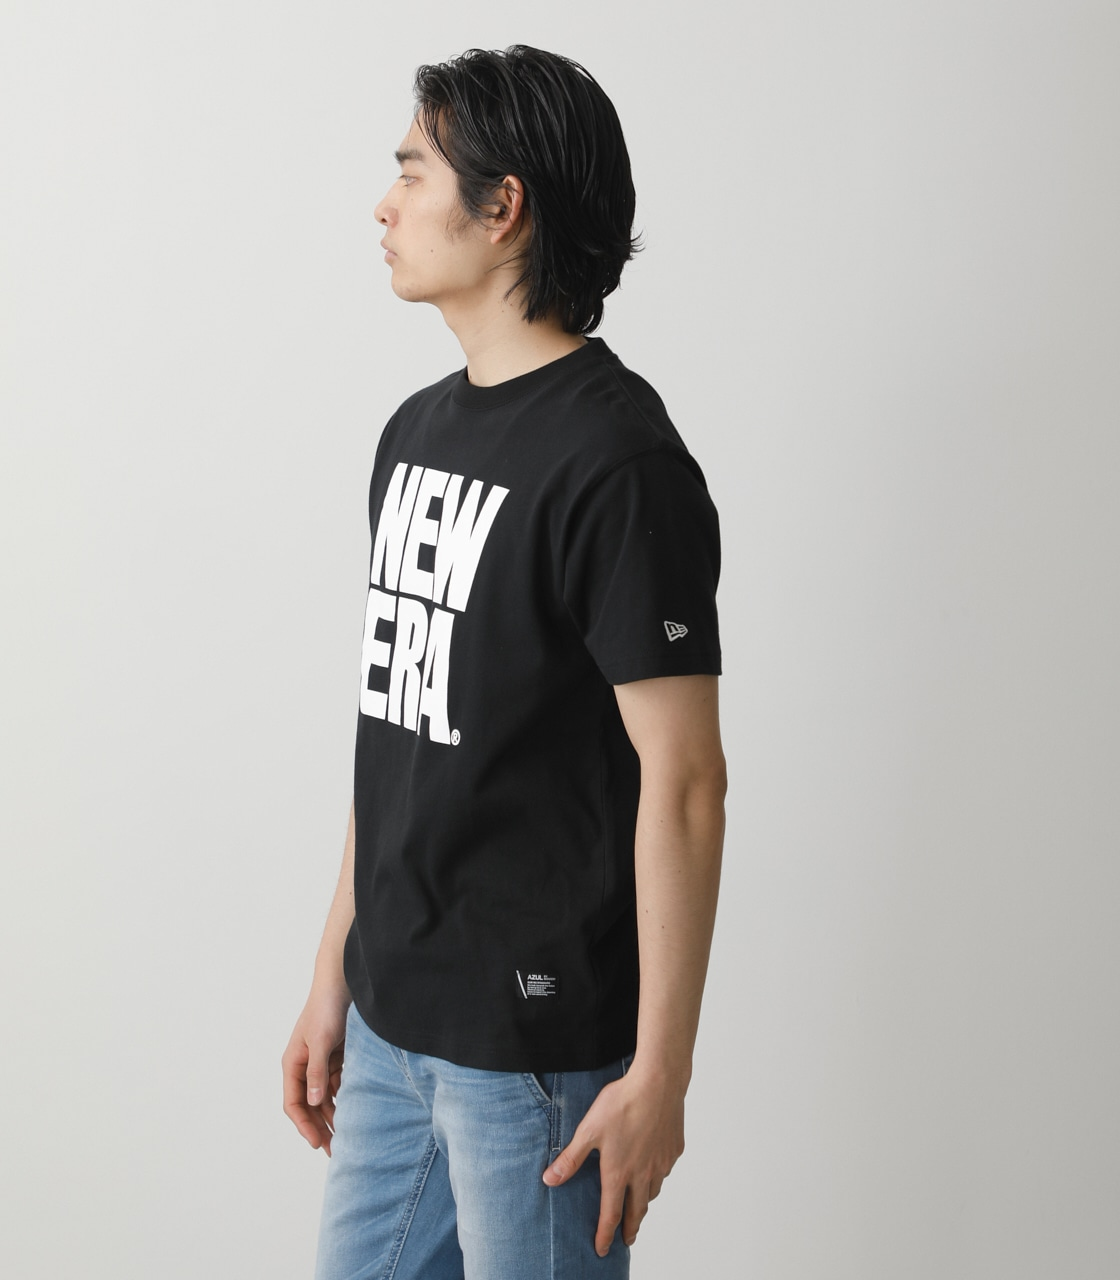 NEW ERA×AZUL T-SHIRTS/NEW ERA×AZULTシャツ 詳細画像 BLK 2